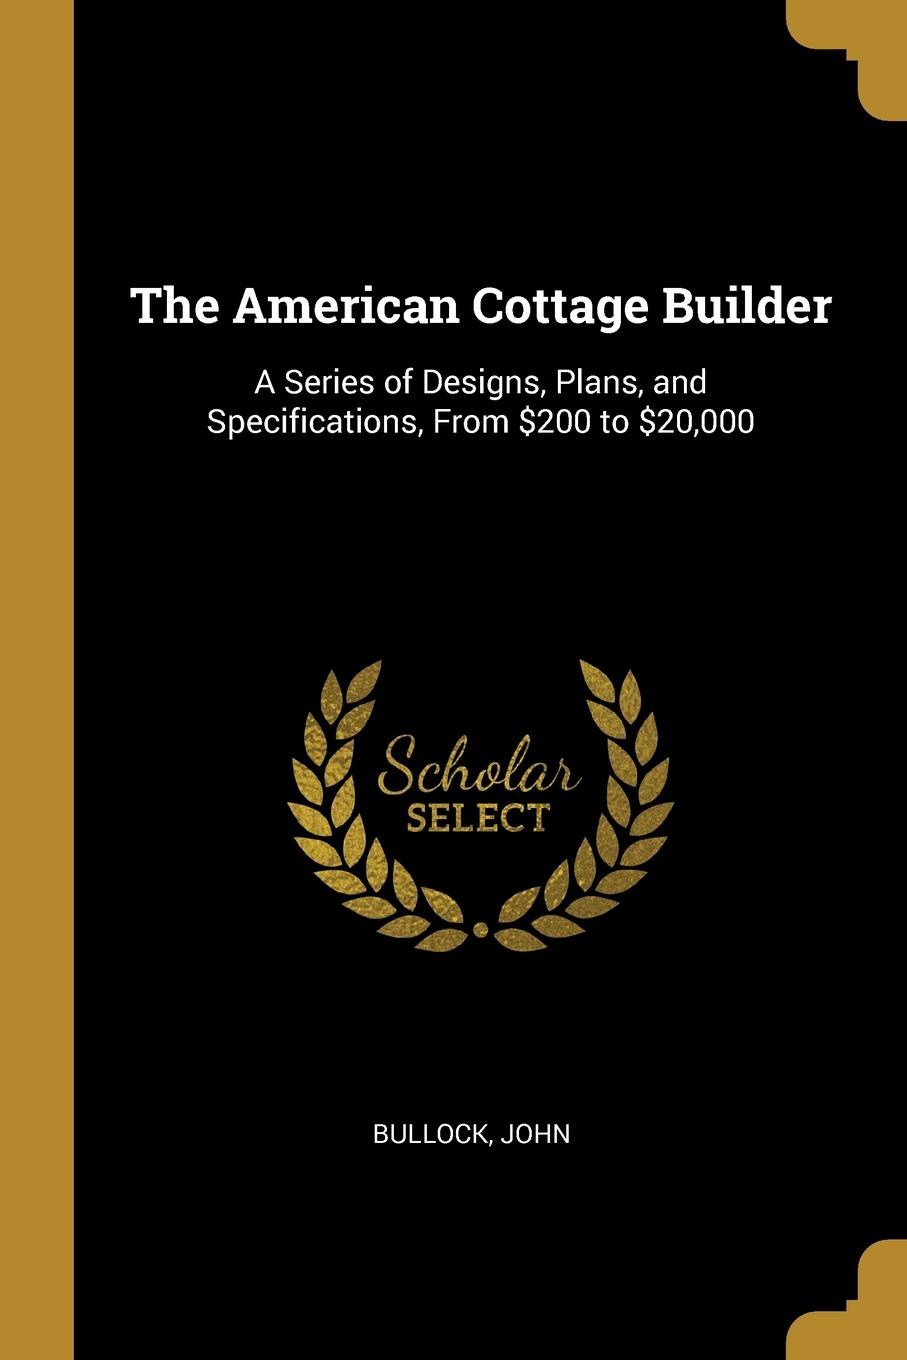 Bullock John. The American Cottage Builder. A Series of Designs, Plans, and Specifications, From .200 to .20,000